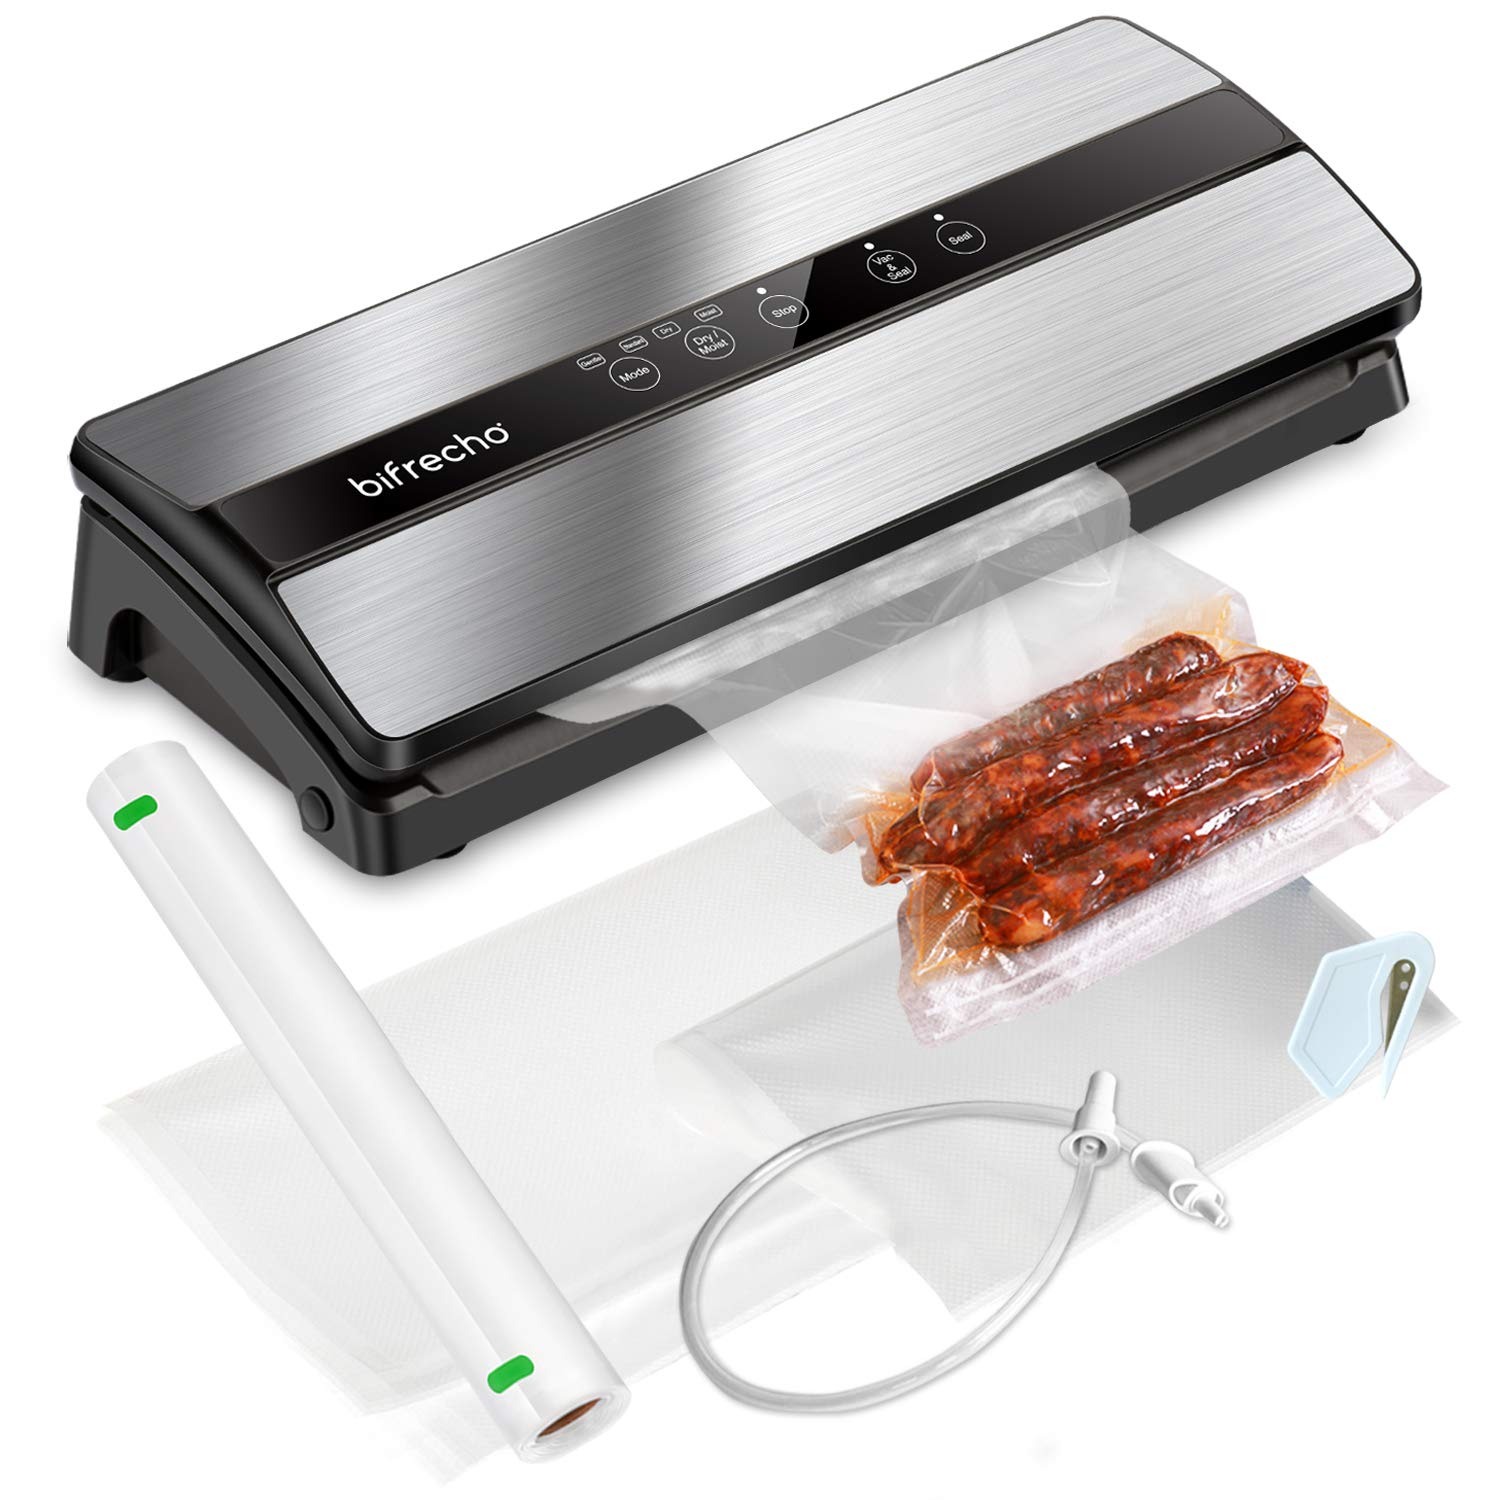 Vacuum Sealer Machine with Starter Kit, Bifrecho Compact Food Saver Vacuum Sealing System, Including Bags and Roll for Food Preservation, Dry Moist Modes, Led Indicator Light, Easy to Clean, Safety Certified by bifrecho